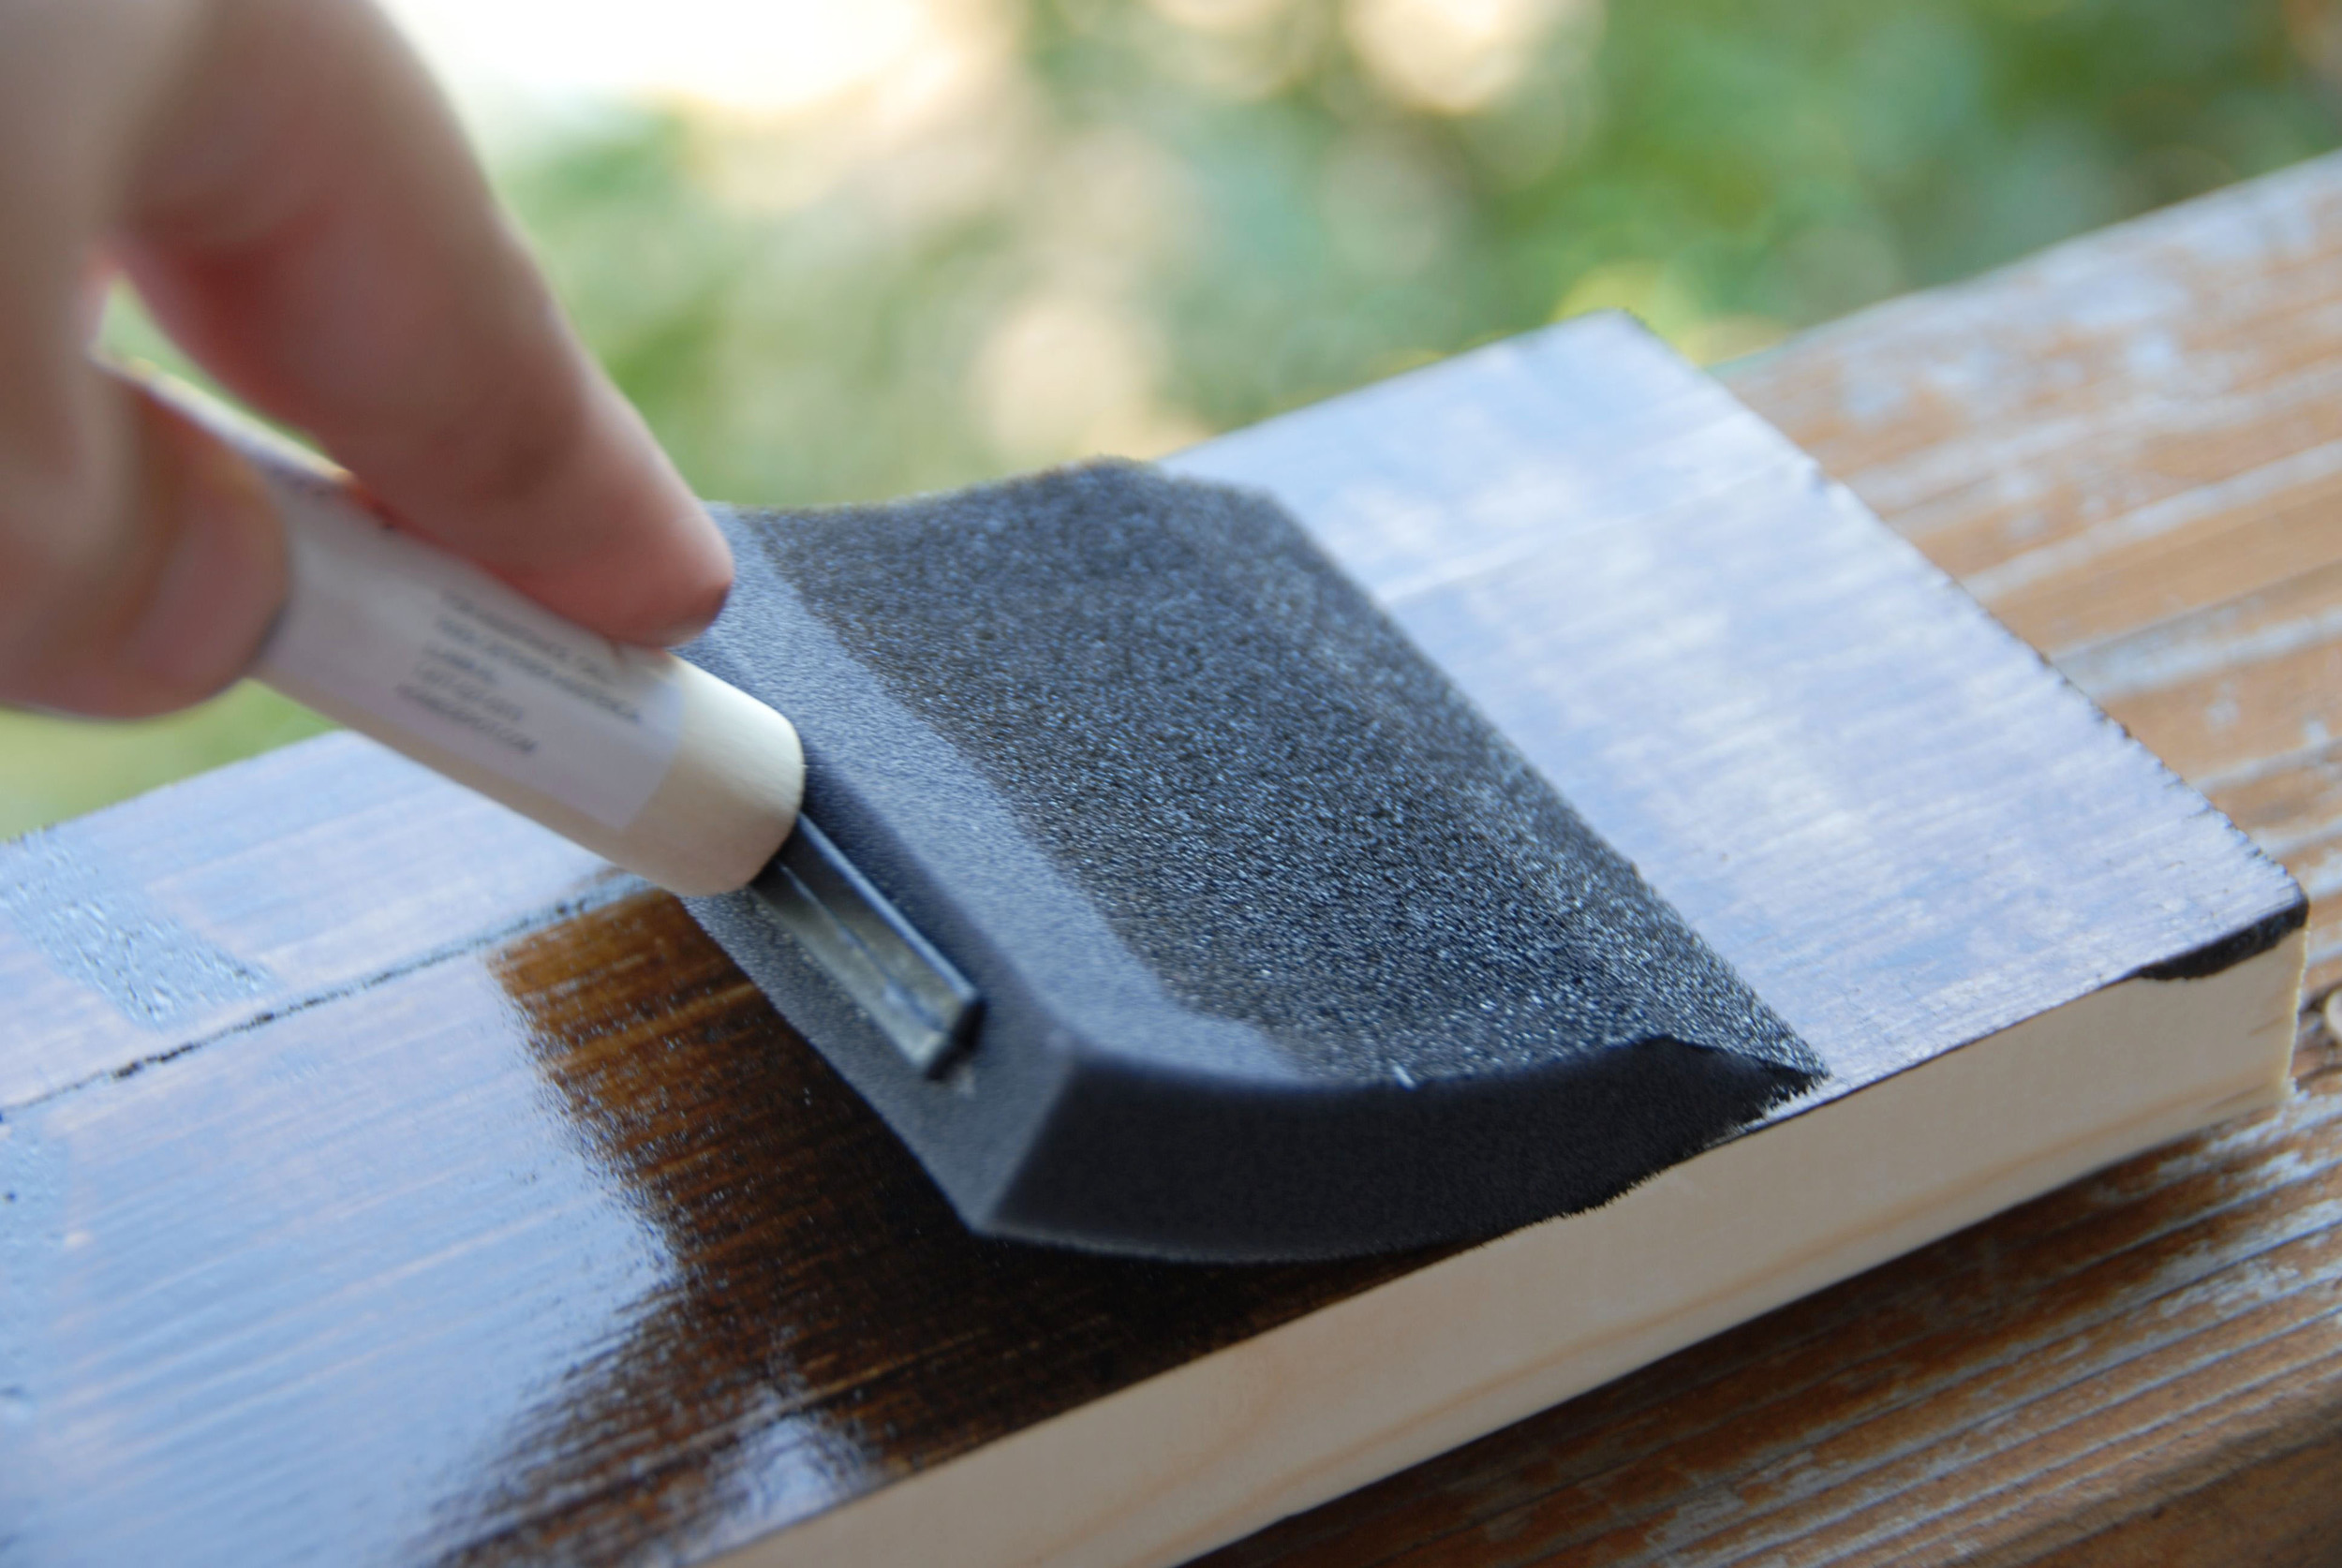 Using a wider sponge, wipe the board from edge to edge (doing this will even out the stain). Note: Do this immediately. If you let the stain sit it will get tacky.